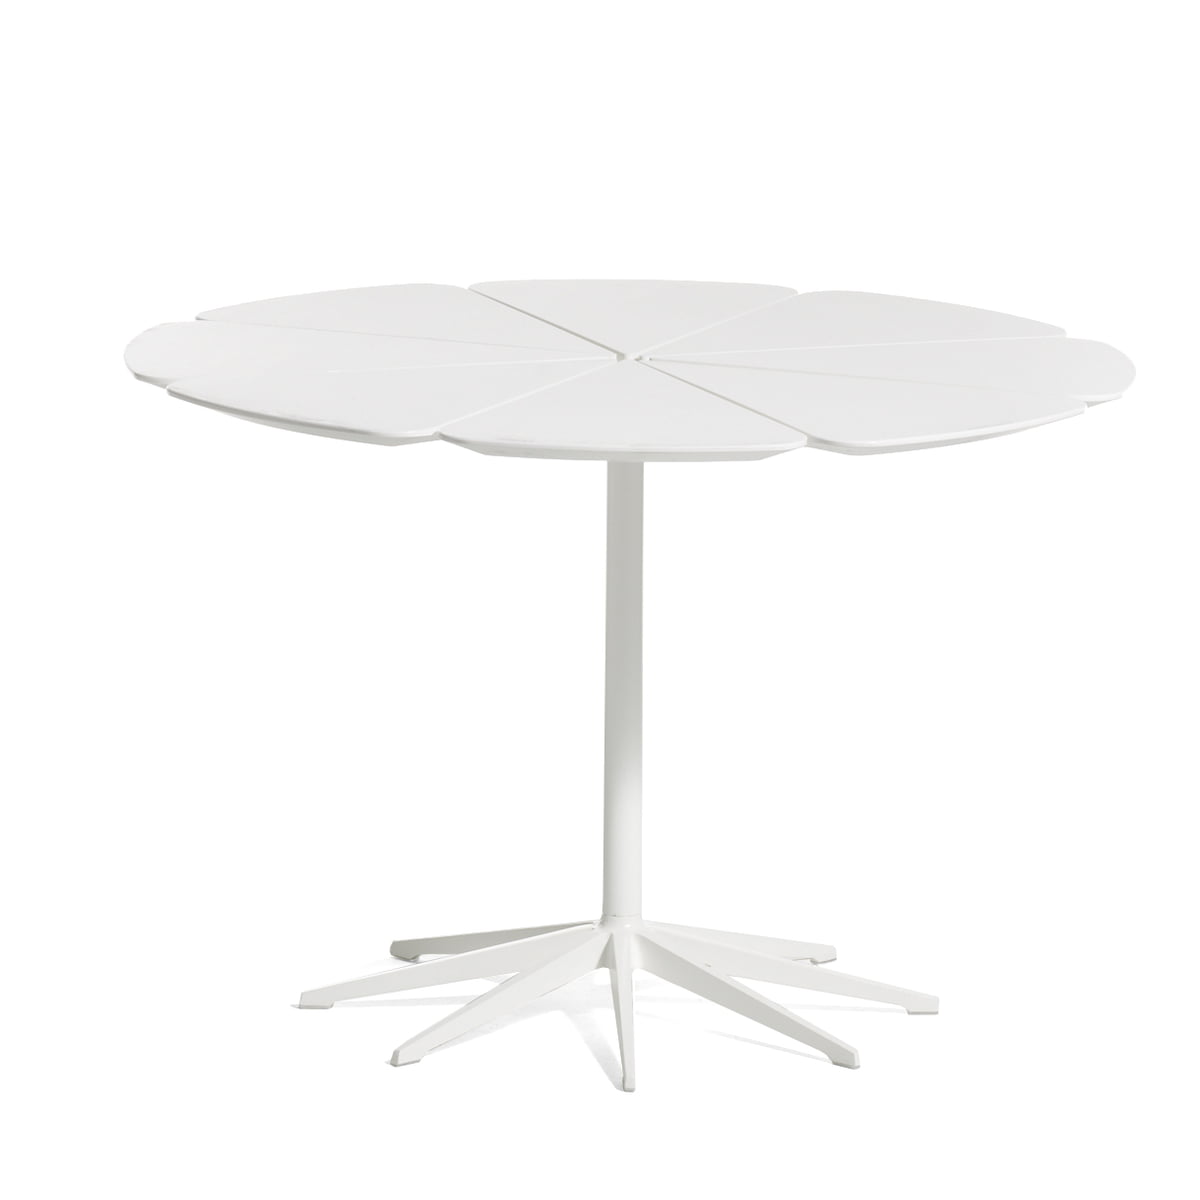 The Petal Dining Table by Knoll in the shop